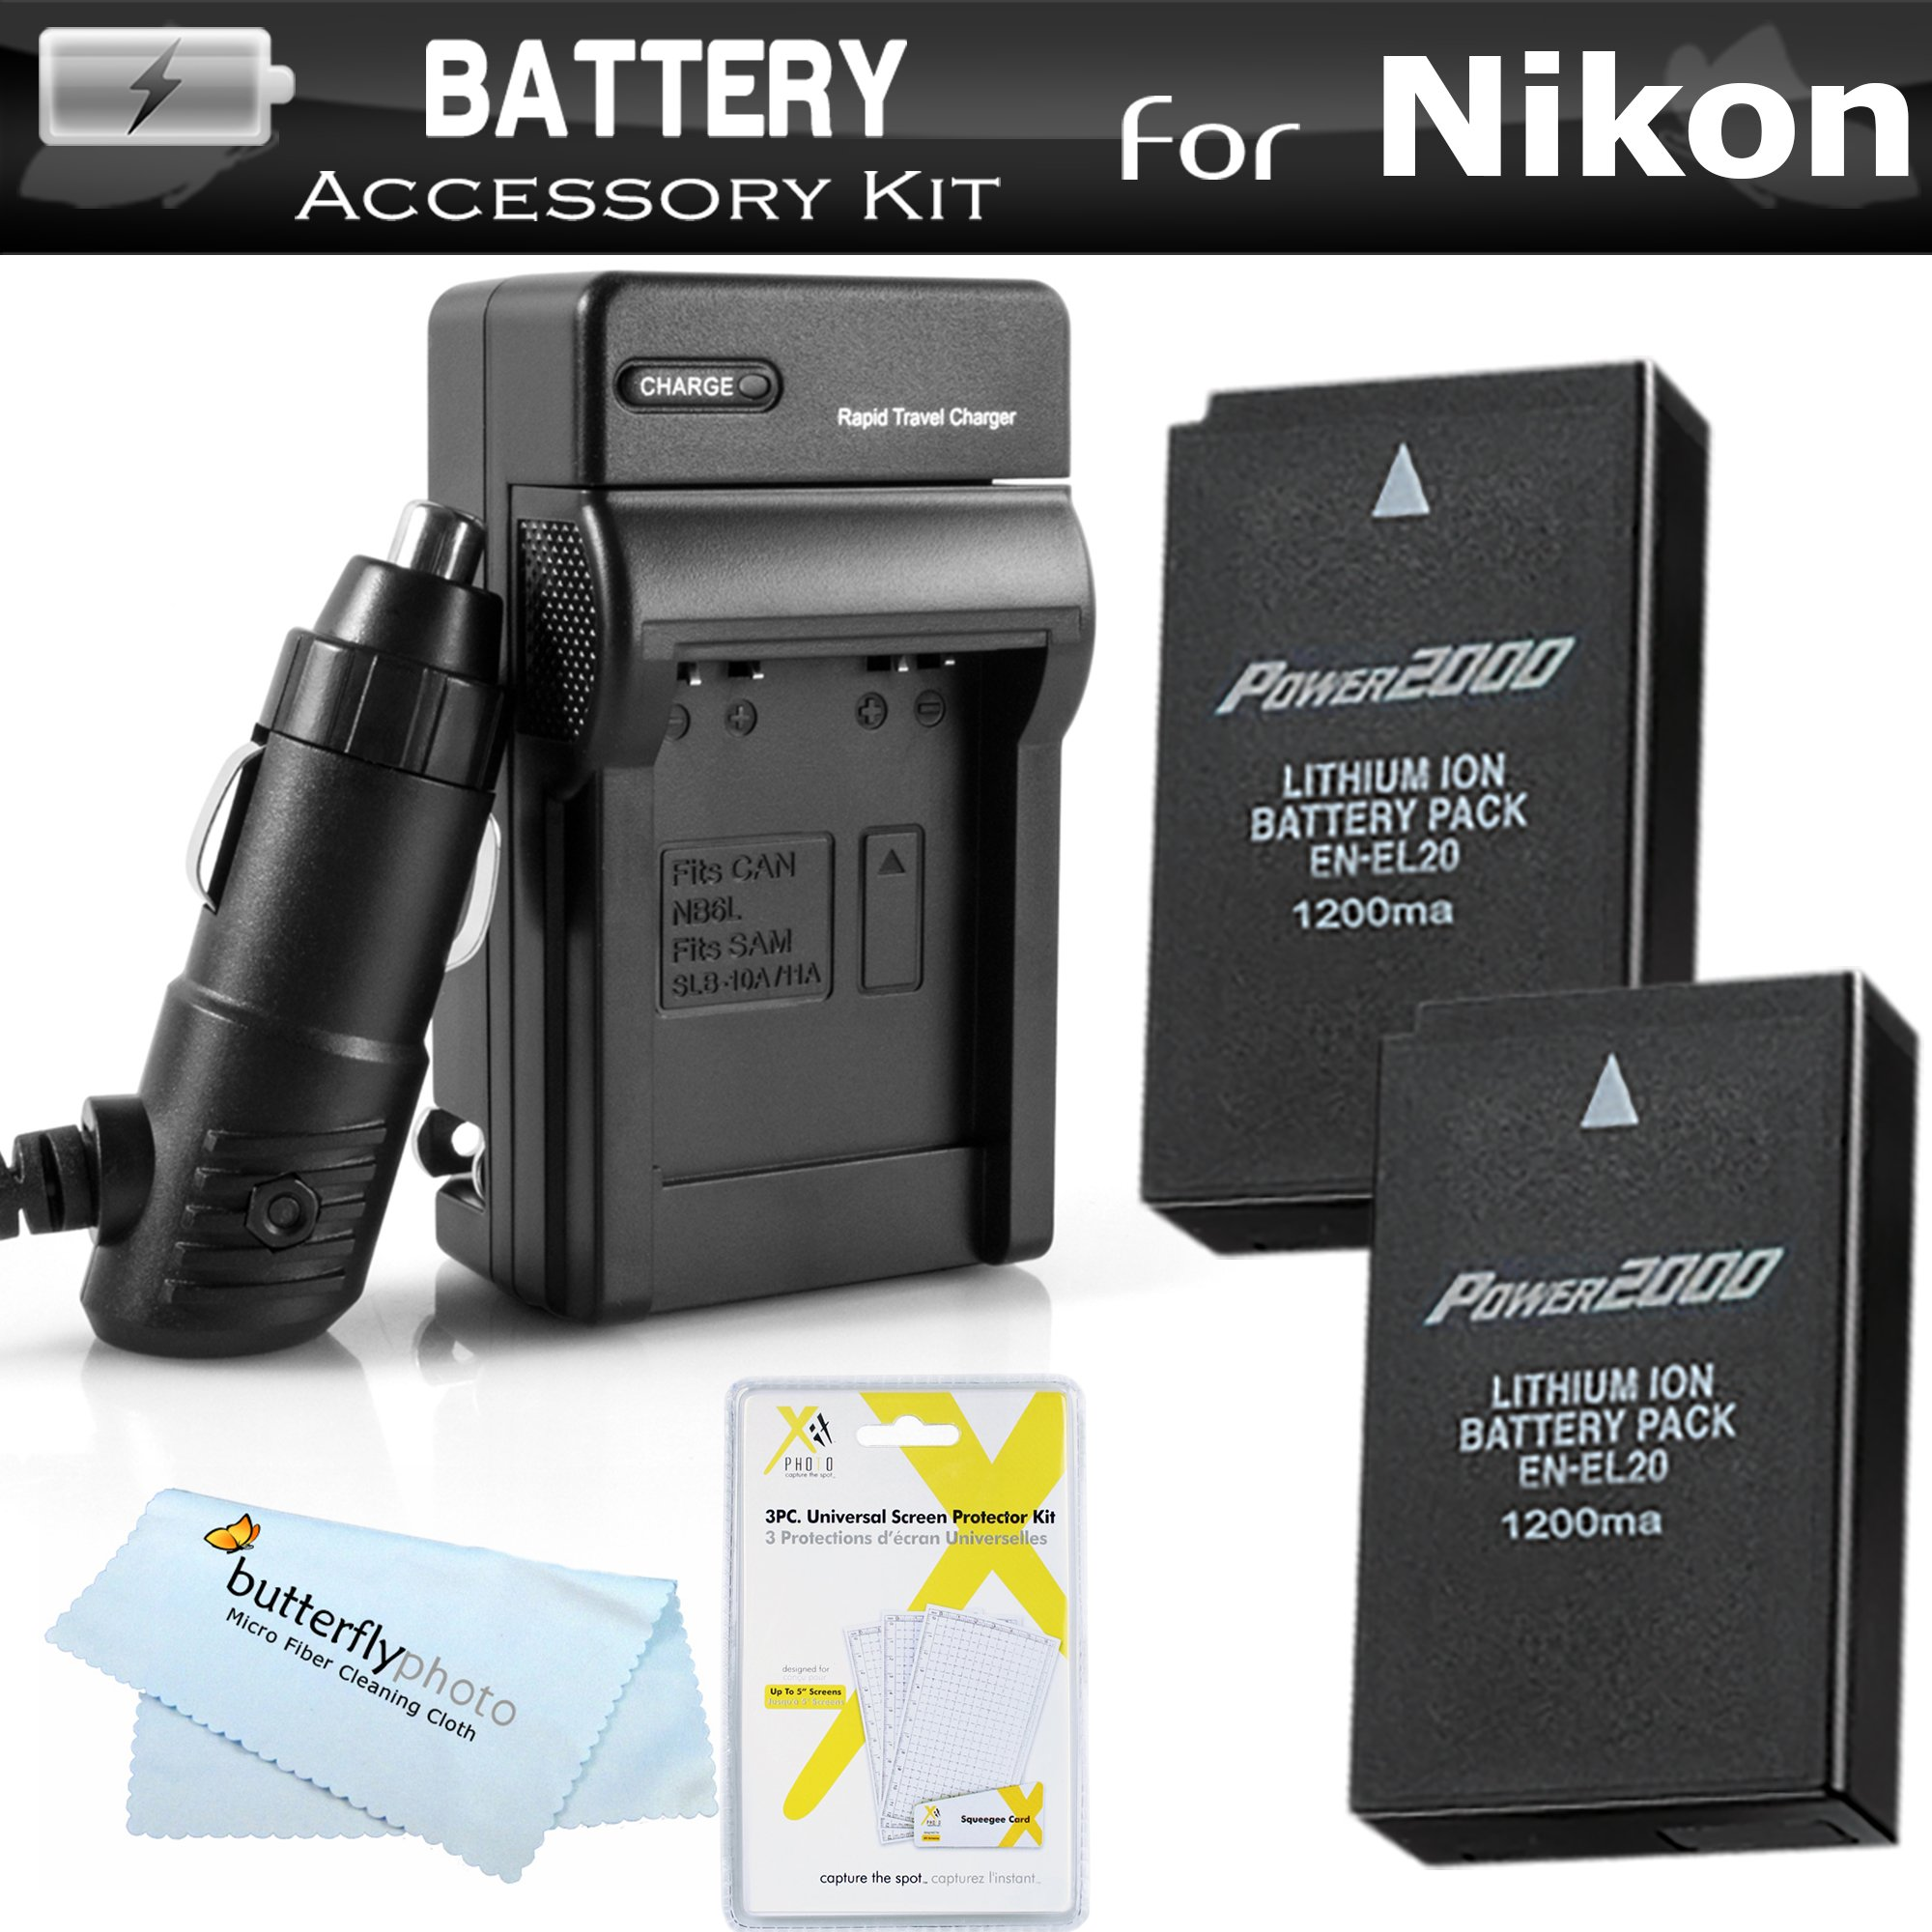 CoolPix A AC//DC Turbo Charger with Travel Adapter A1W1 1 V3 Camera /&More 2 EN-EL20 Batteries Complete Deluxe Starter Kit f//Nikon Coolpix 1 J3